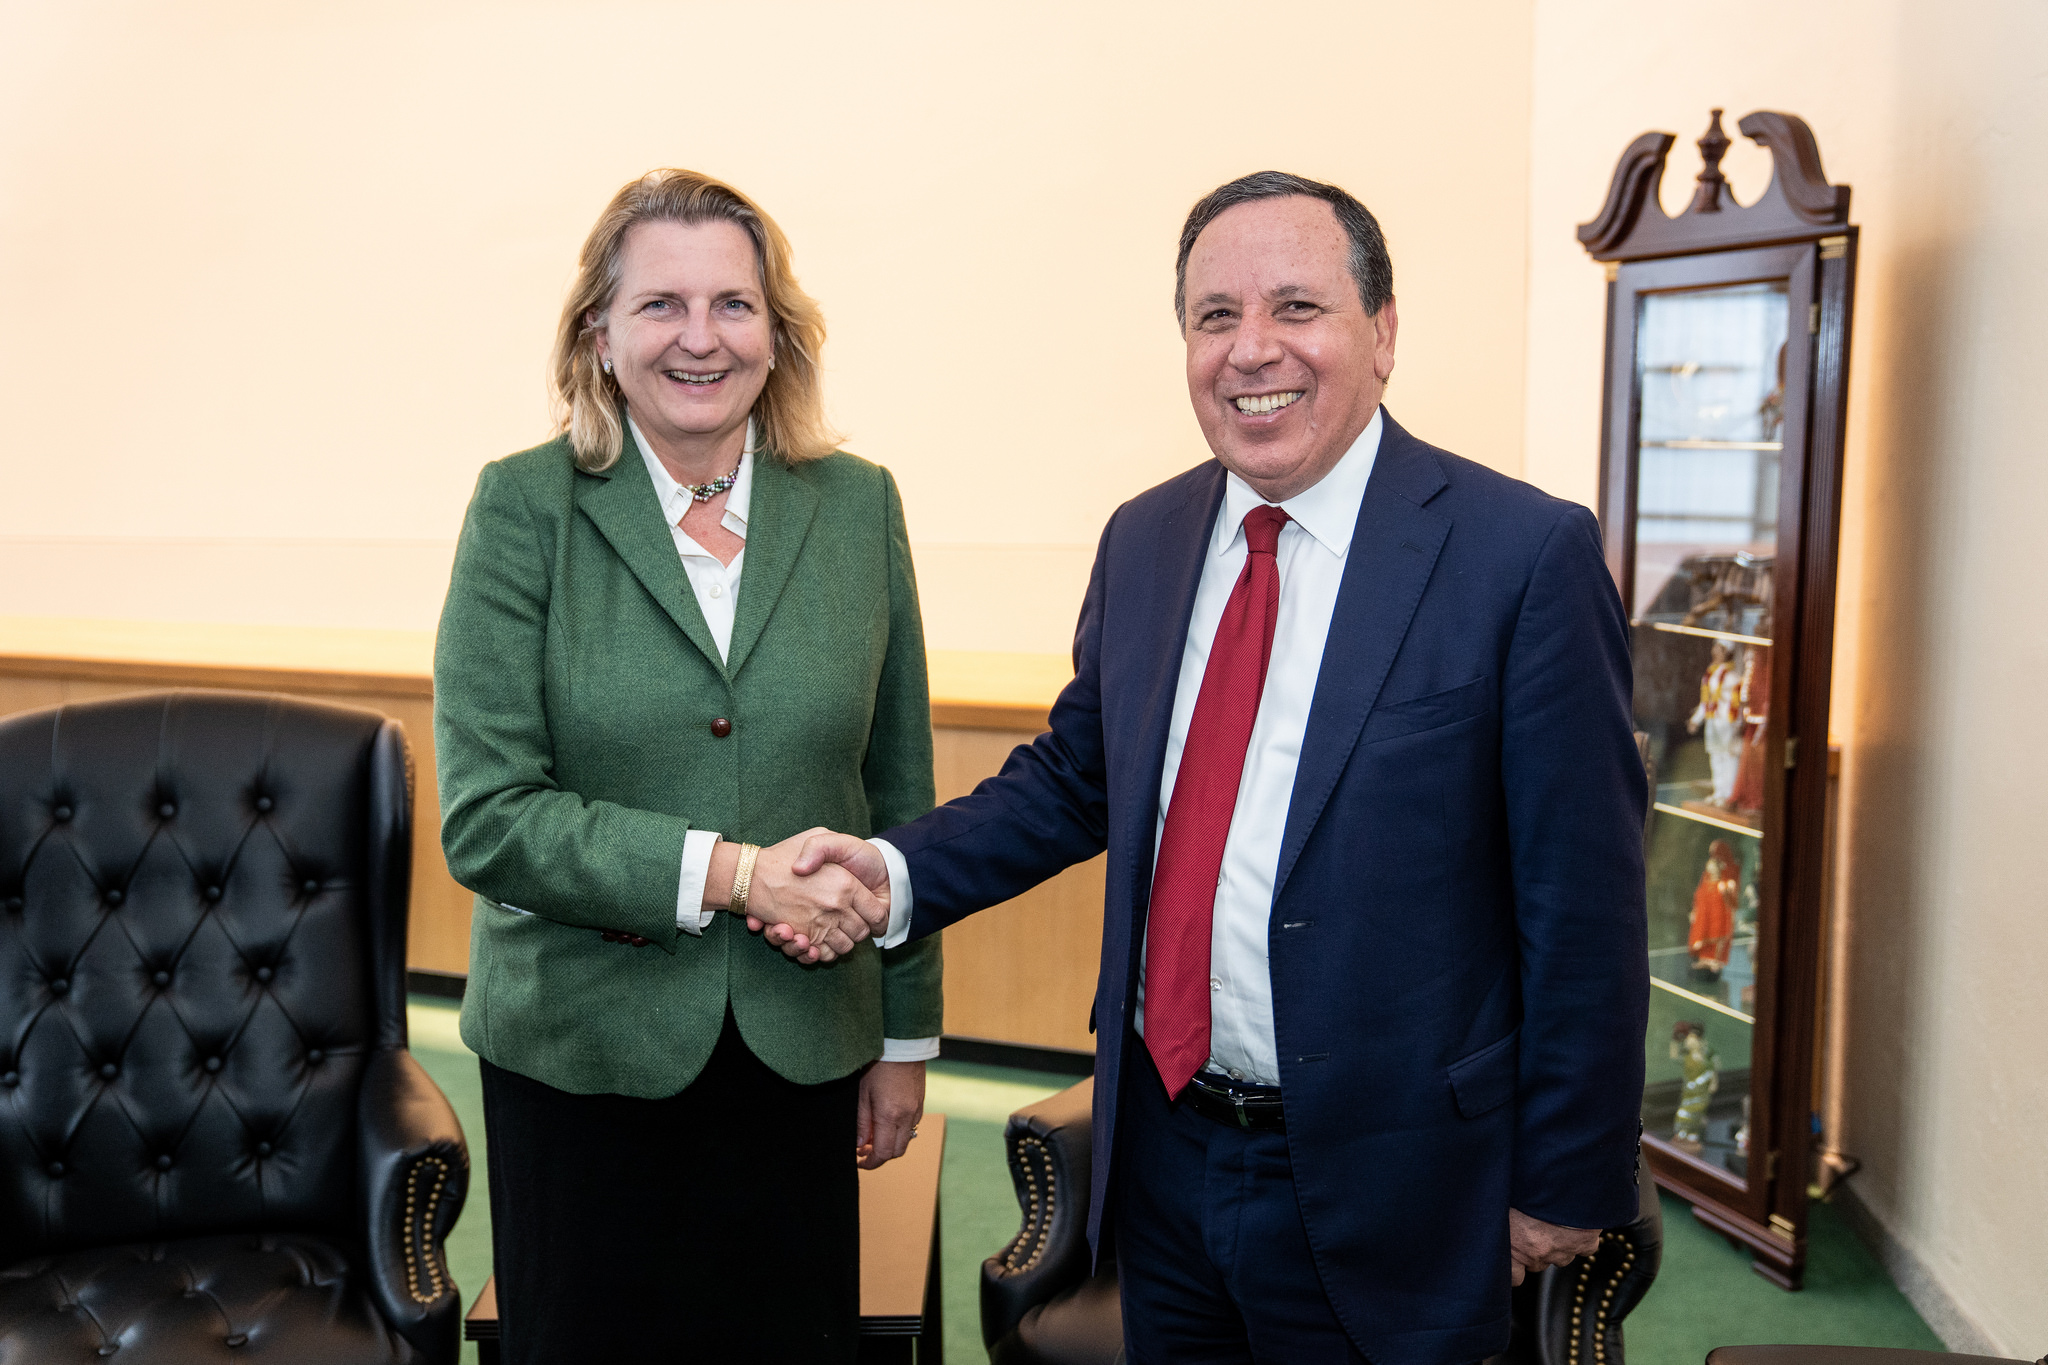 Foreign Minister Karin Kneissl meeting with her counterpart from Tunisia, Khemaies Jhinaoui (c) Austrian Ministry of Foreign Affairs